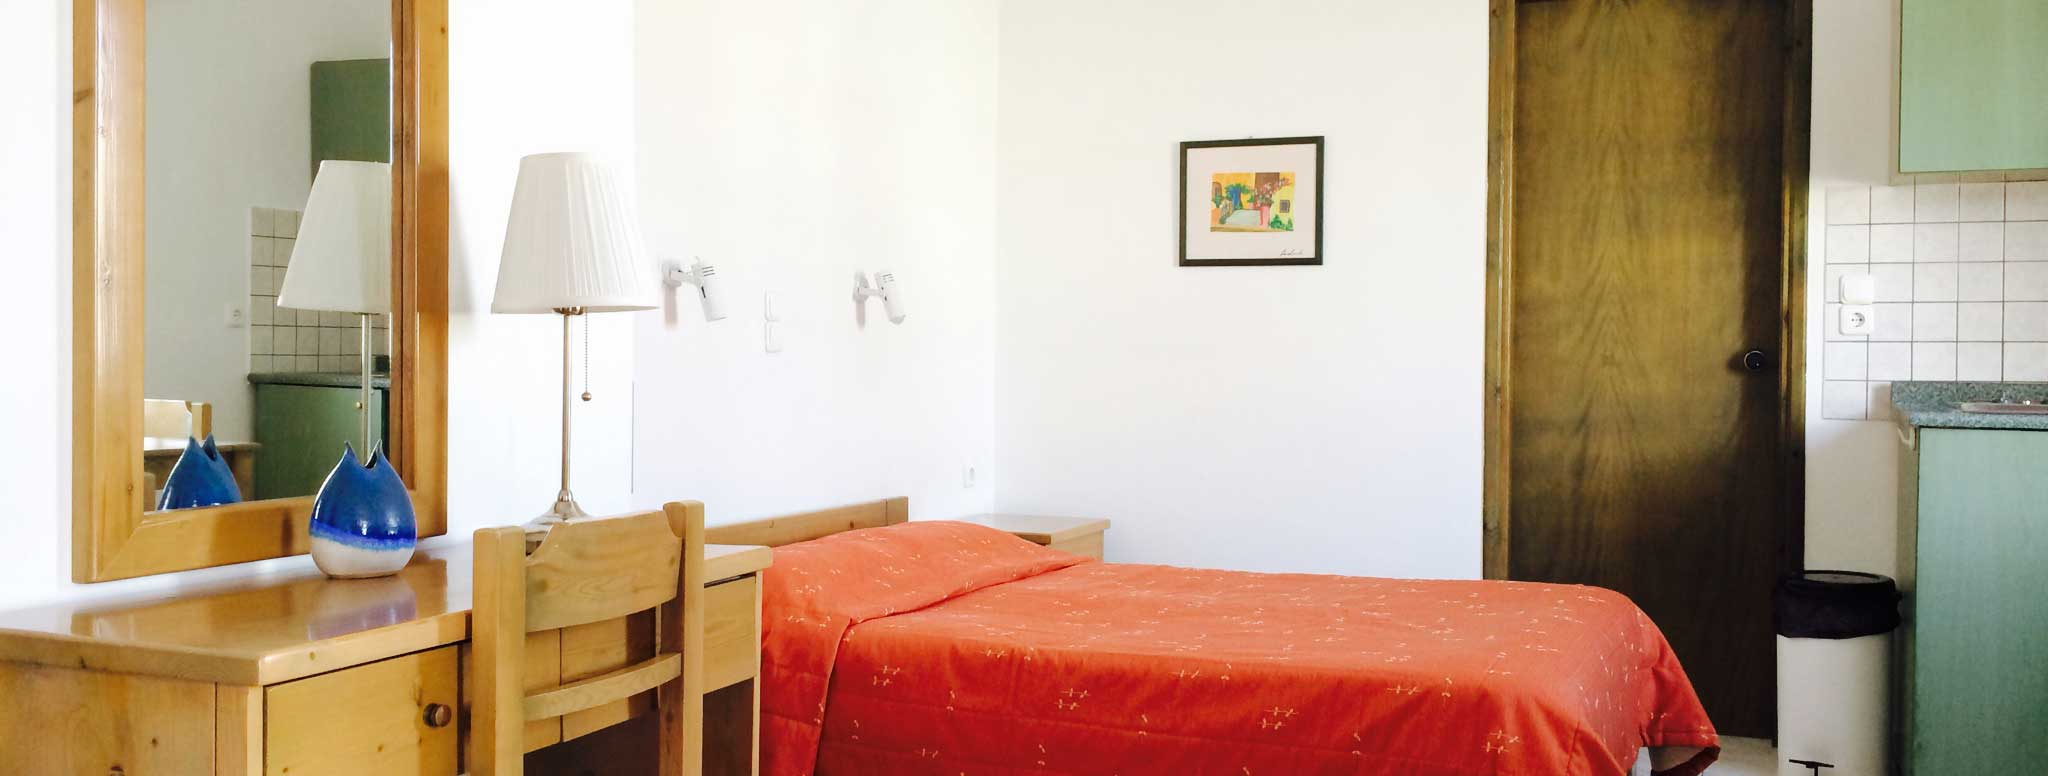 Sonio Beach Hotel - Sonio Beach-Accommodation-Studio